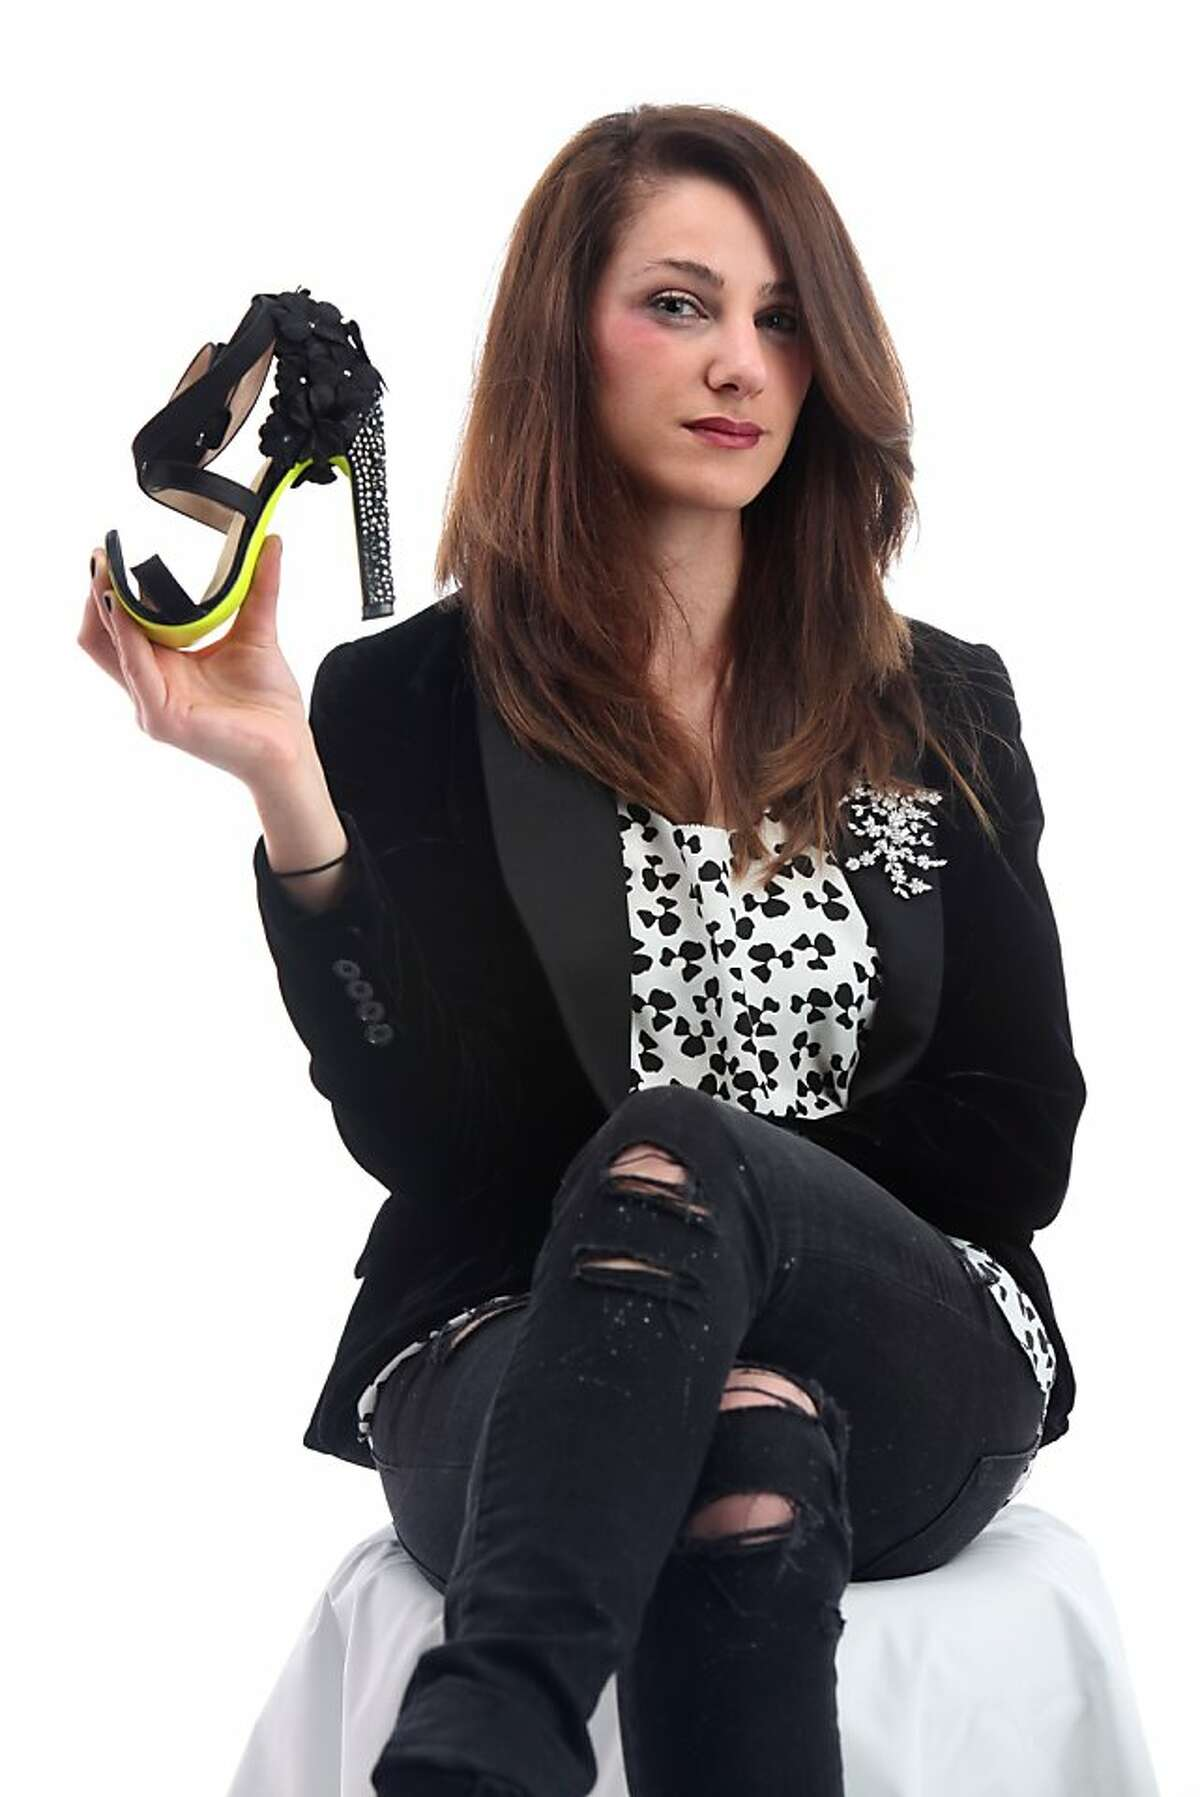 Shoe designer Sasha Igdari wears and shows the comfort flexibility of her four inch heels in San Francisco, Calif., on Thursday, May 19, 2011.